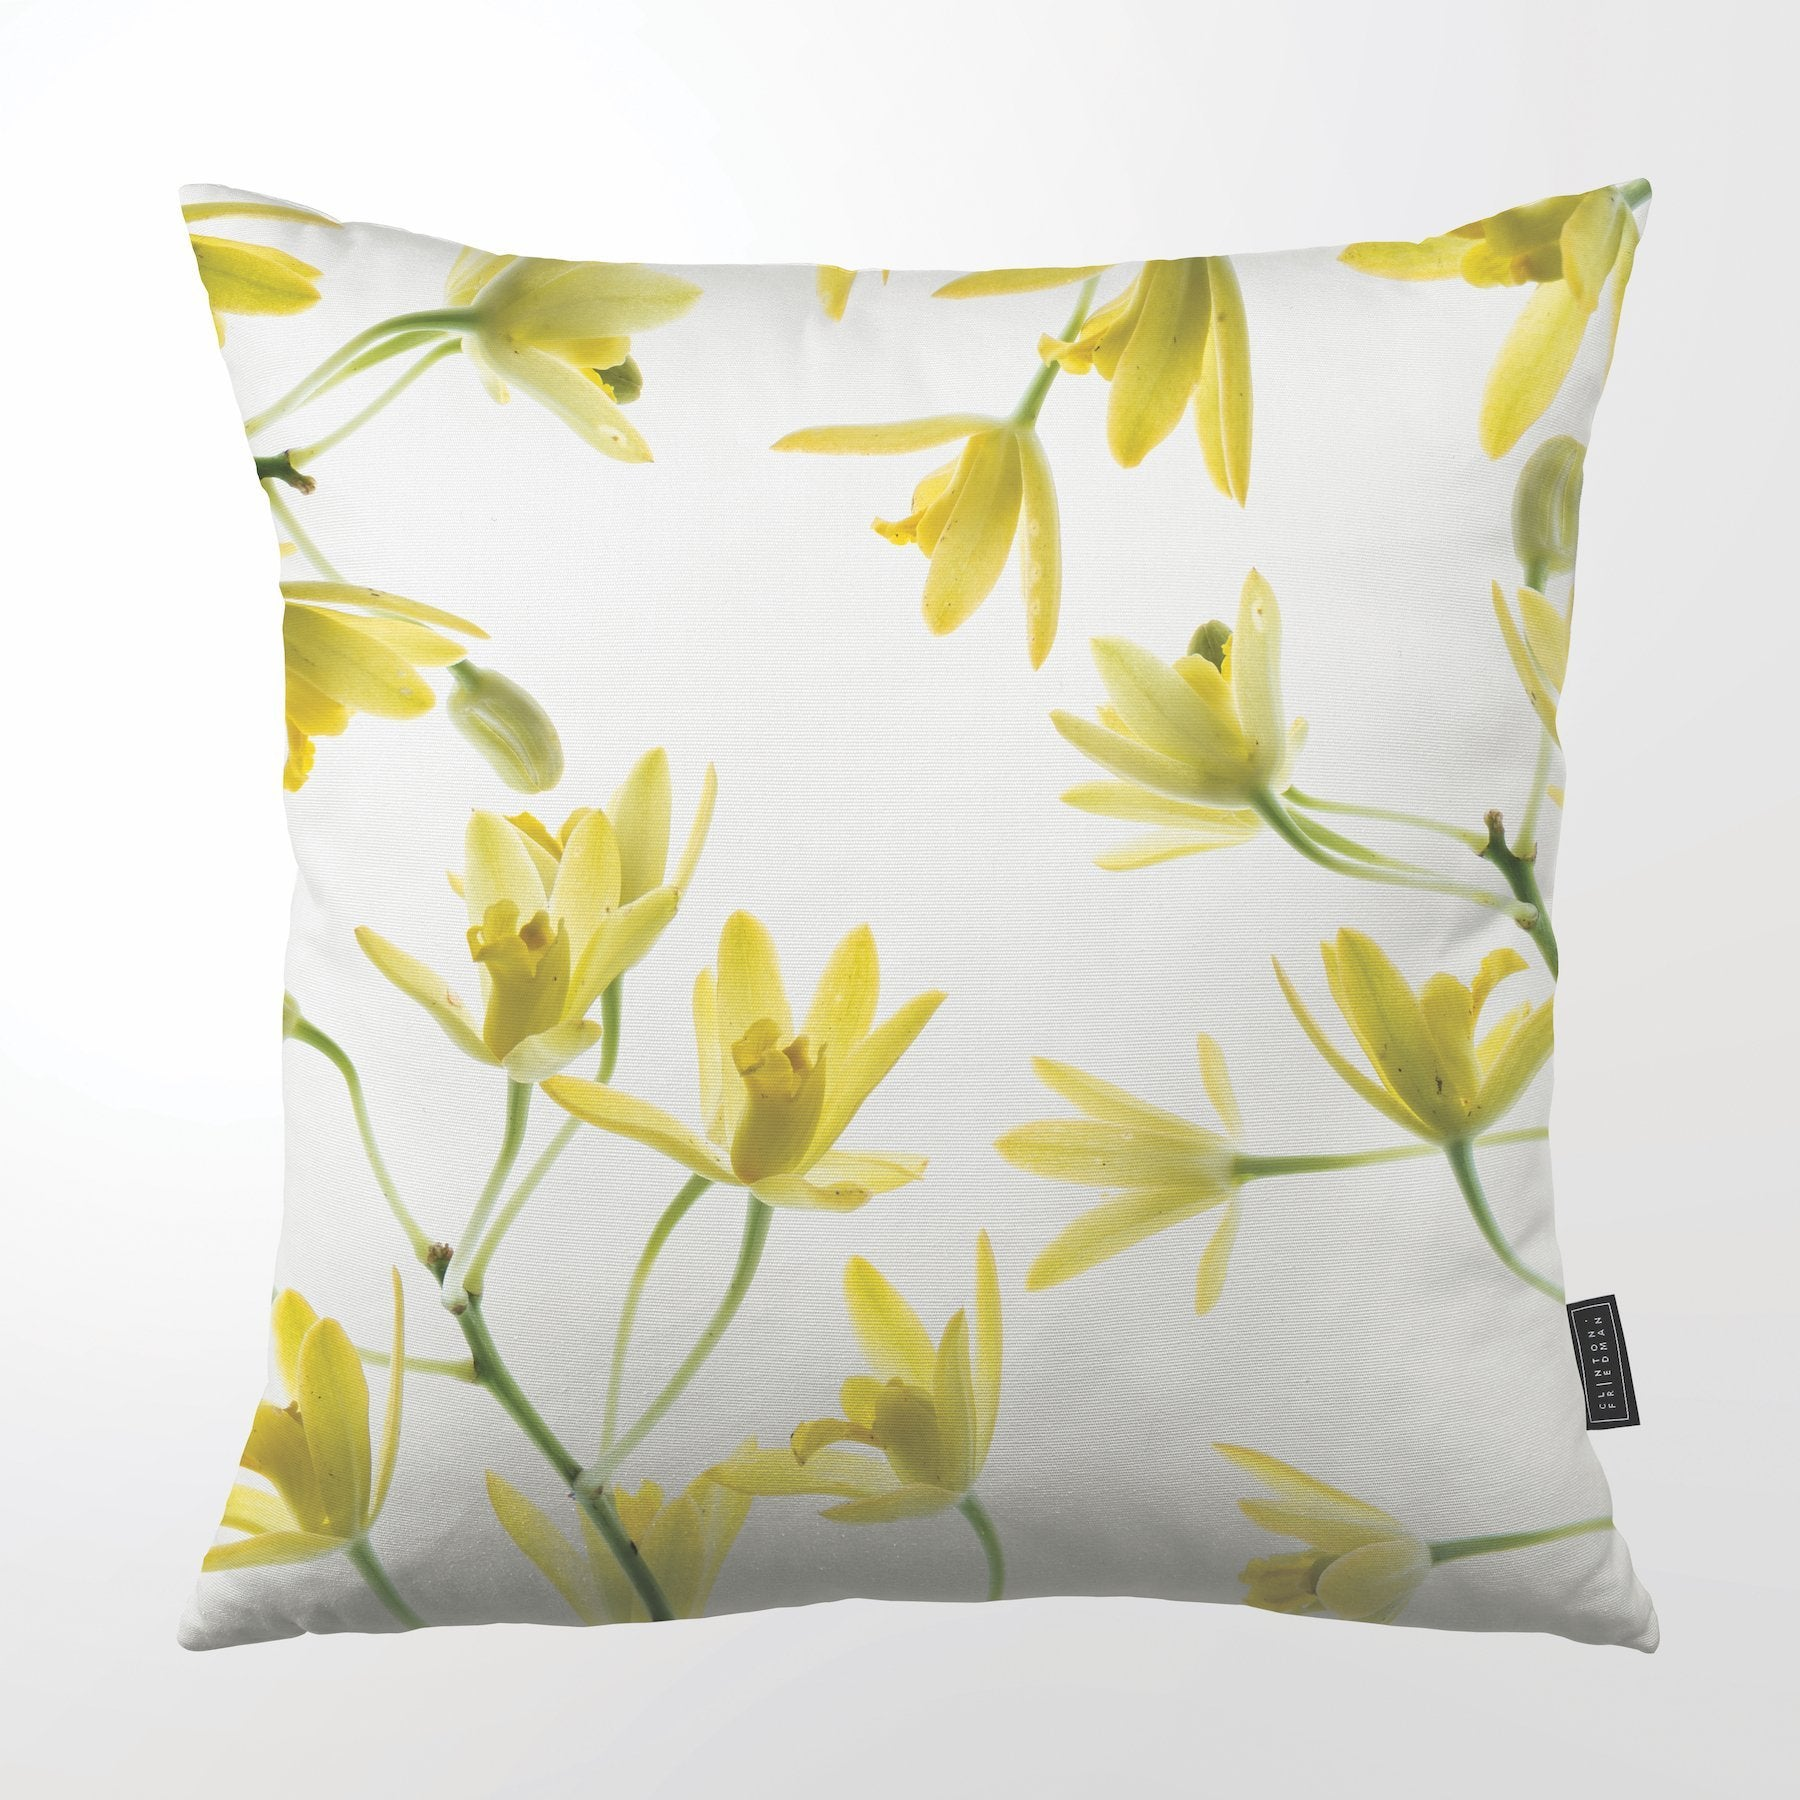 CLINTON FRIEDMAN USA NEW YORK AFRICAN ORCHID THROW PILLOW